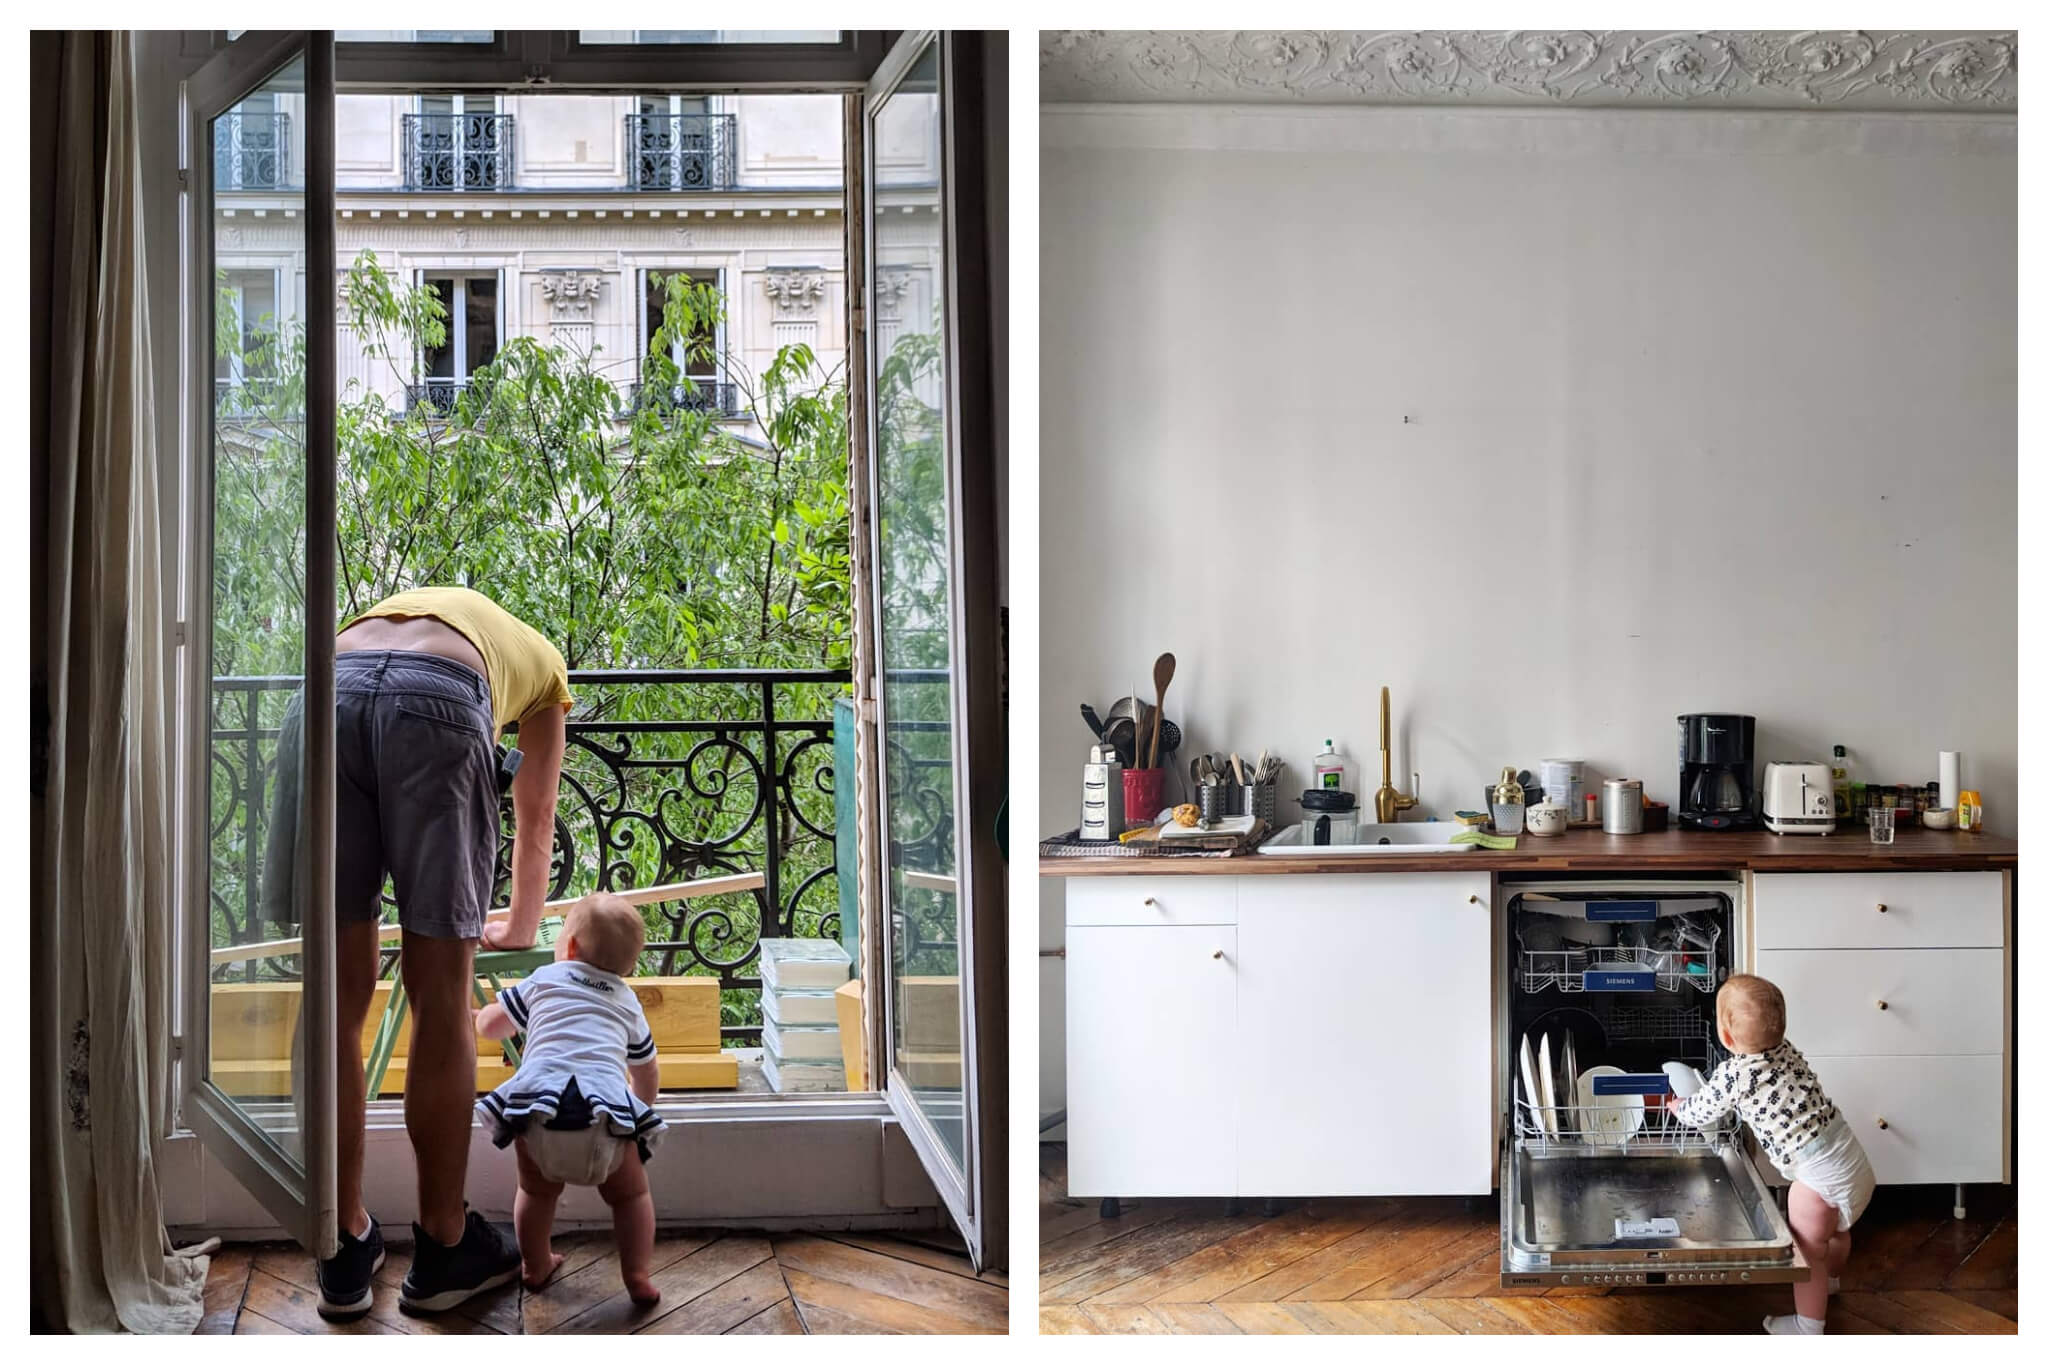 Left: A father and his baby inspect pieces of wood while leaning out onto their balcony in Paris, Right: A baby helps load the dishwasher with dirty dishes.